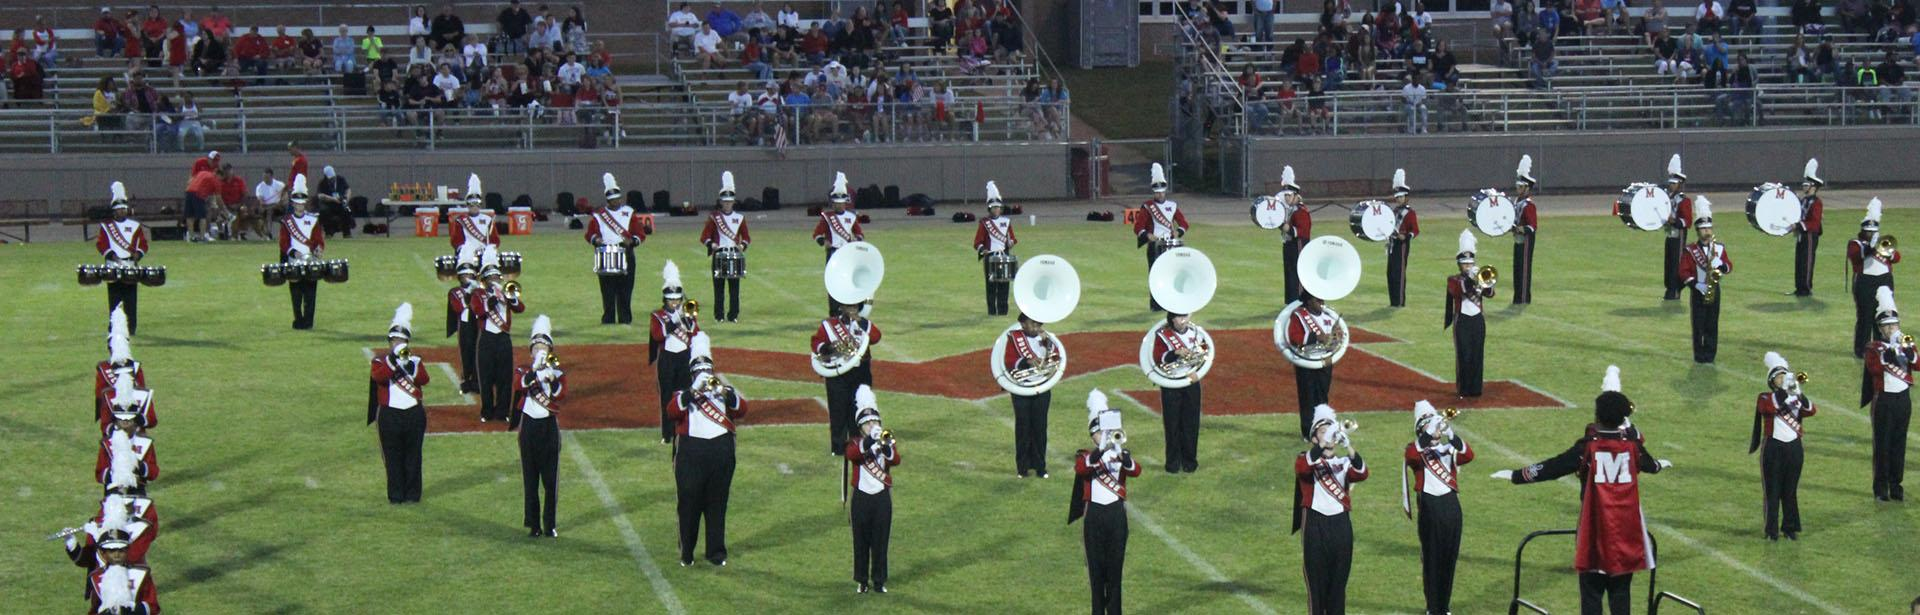 Marching band playing at a football game